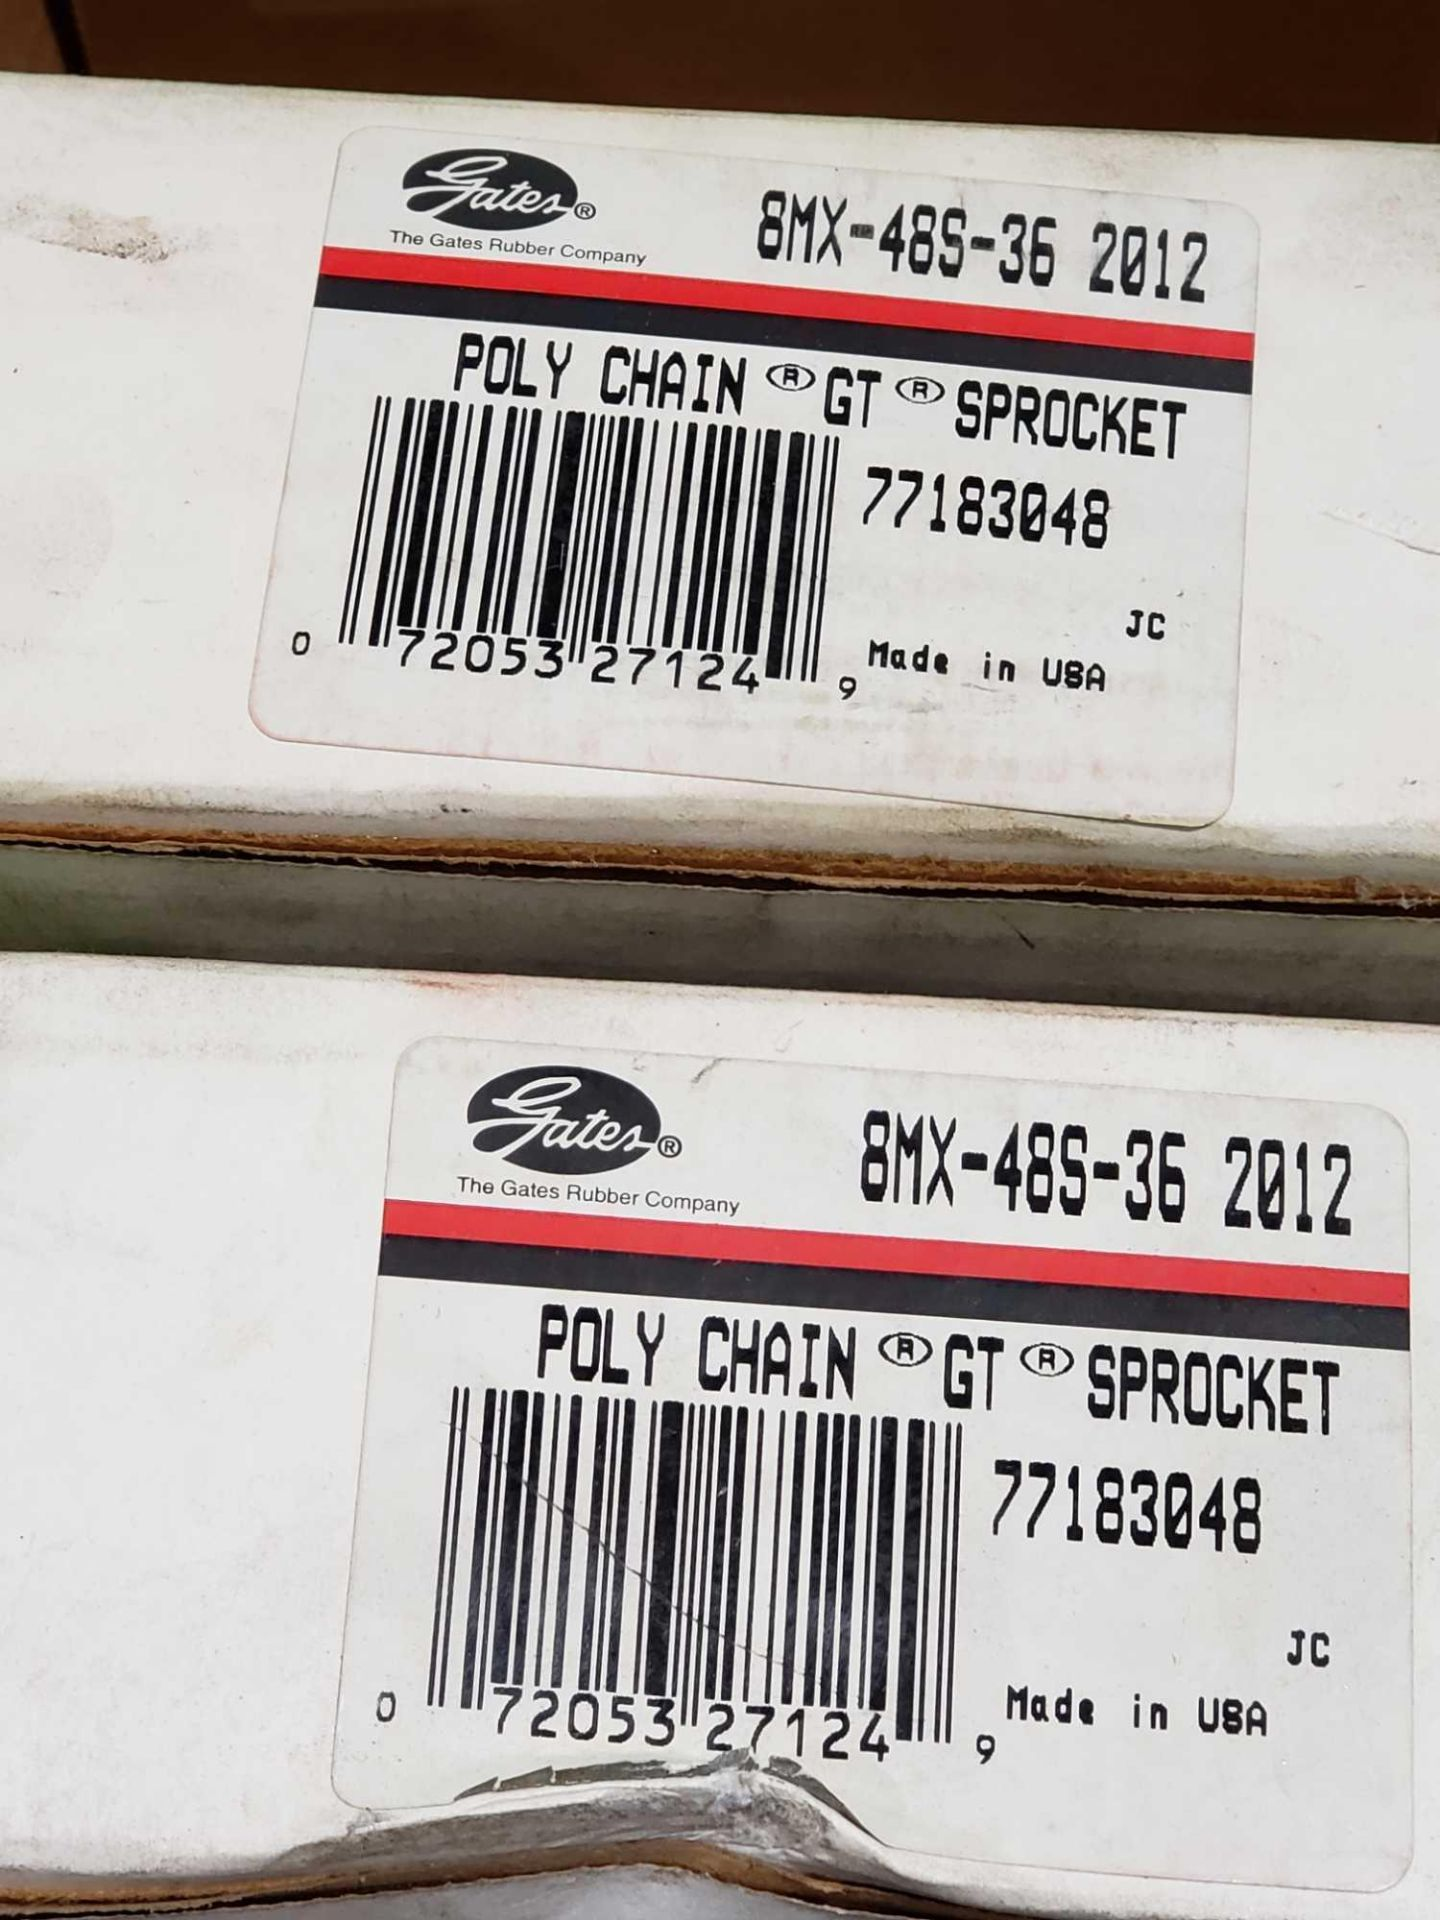 Lot 8 - Qty 2 - Gates poly chain GT sprocket model 8MX-48S-36-2012. New in box.